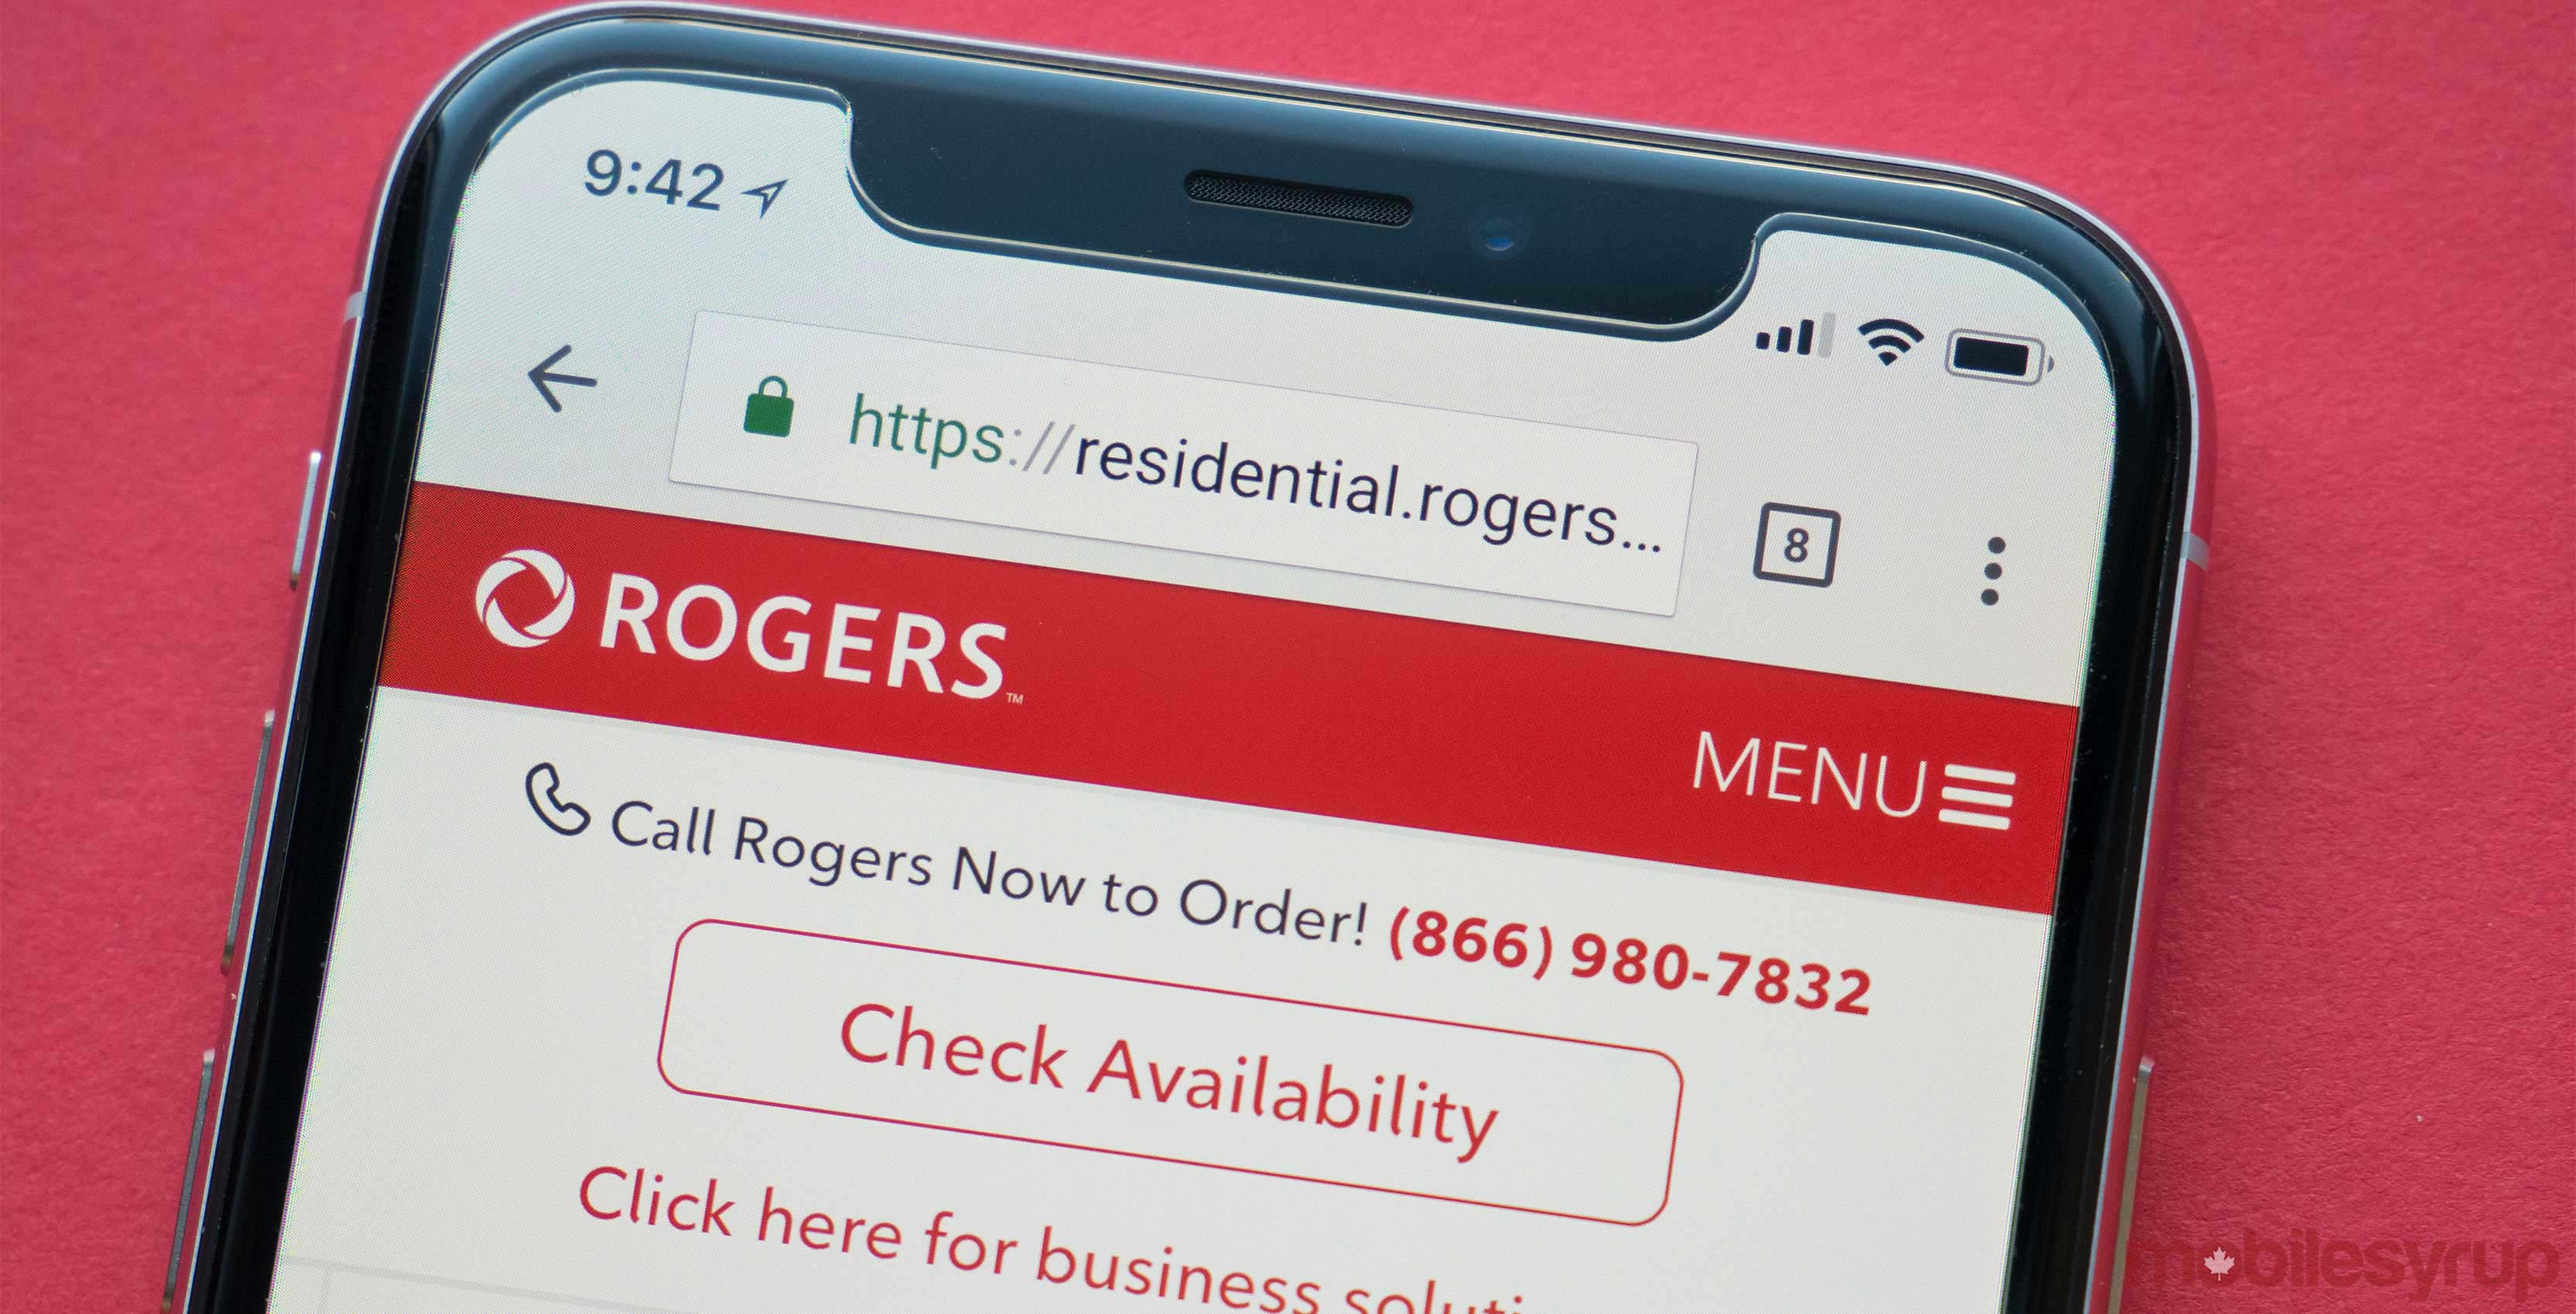 Cormark Weighs in on Rogers Communications' Q1 2018 Earnings (RCI)